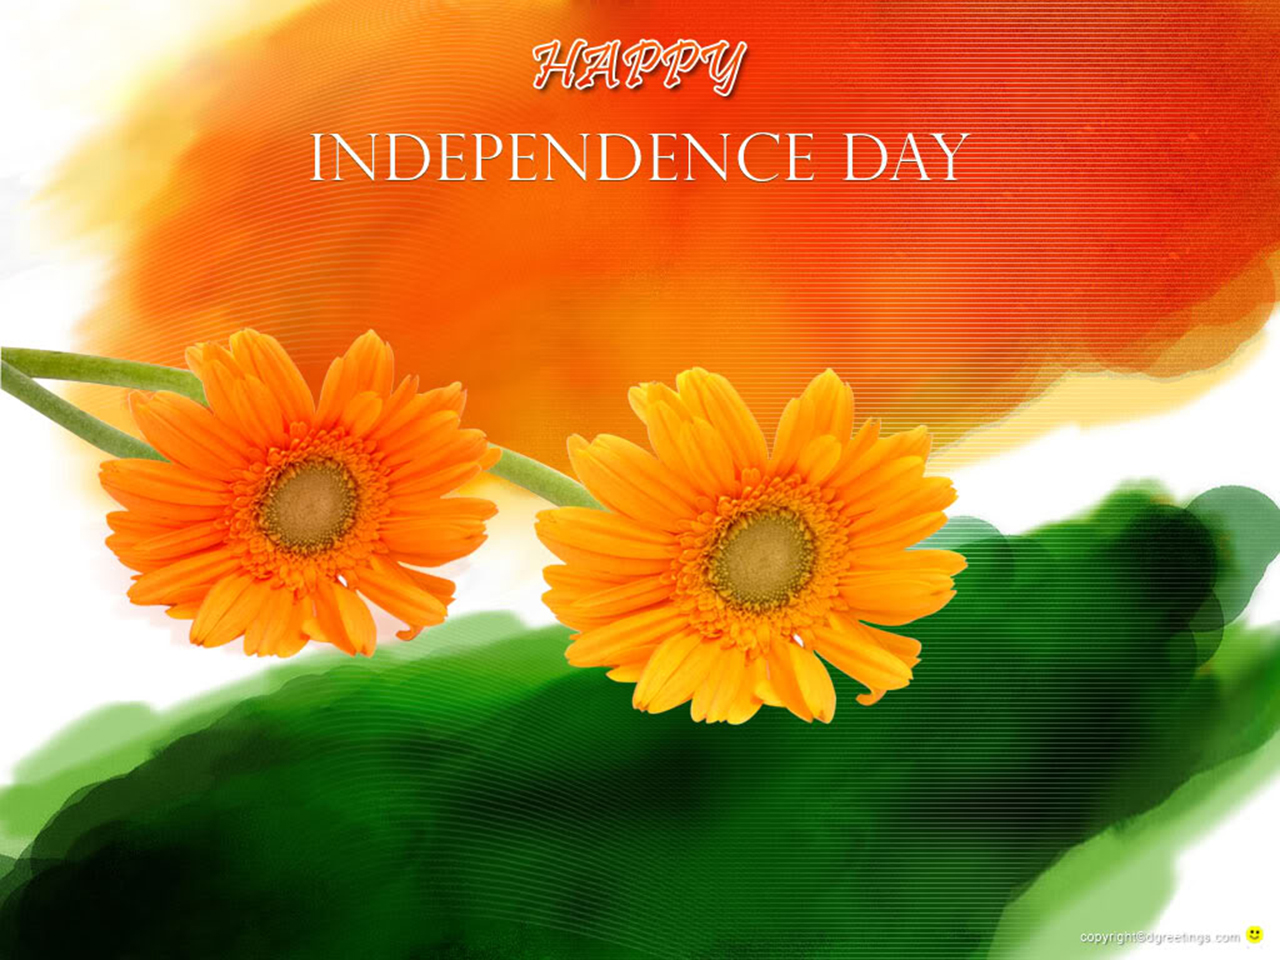 Independence Day wallpapers Celebrations of Indian Independence Day 1280x960